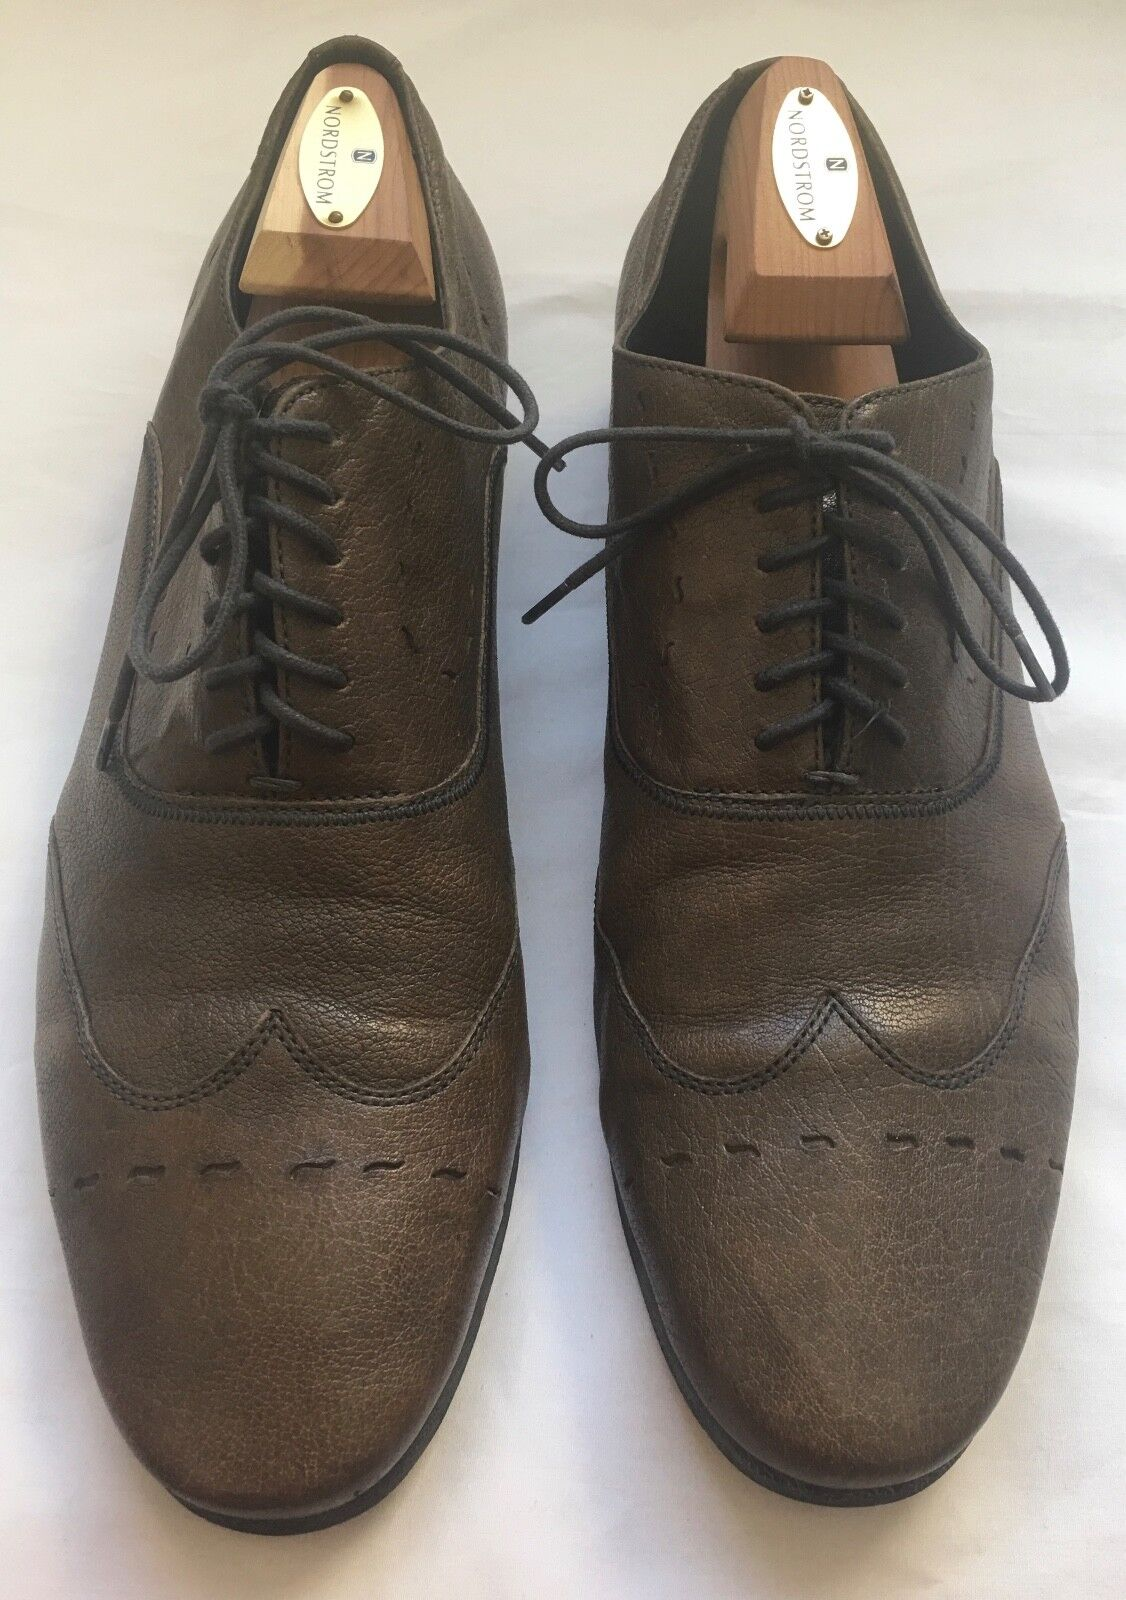 Geox Mens shoes 43US Respira Leather Oxfords